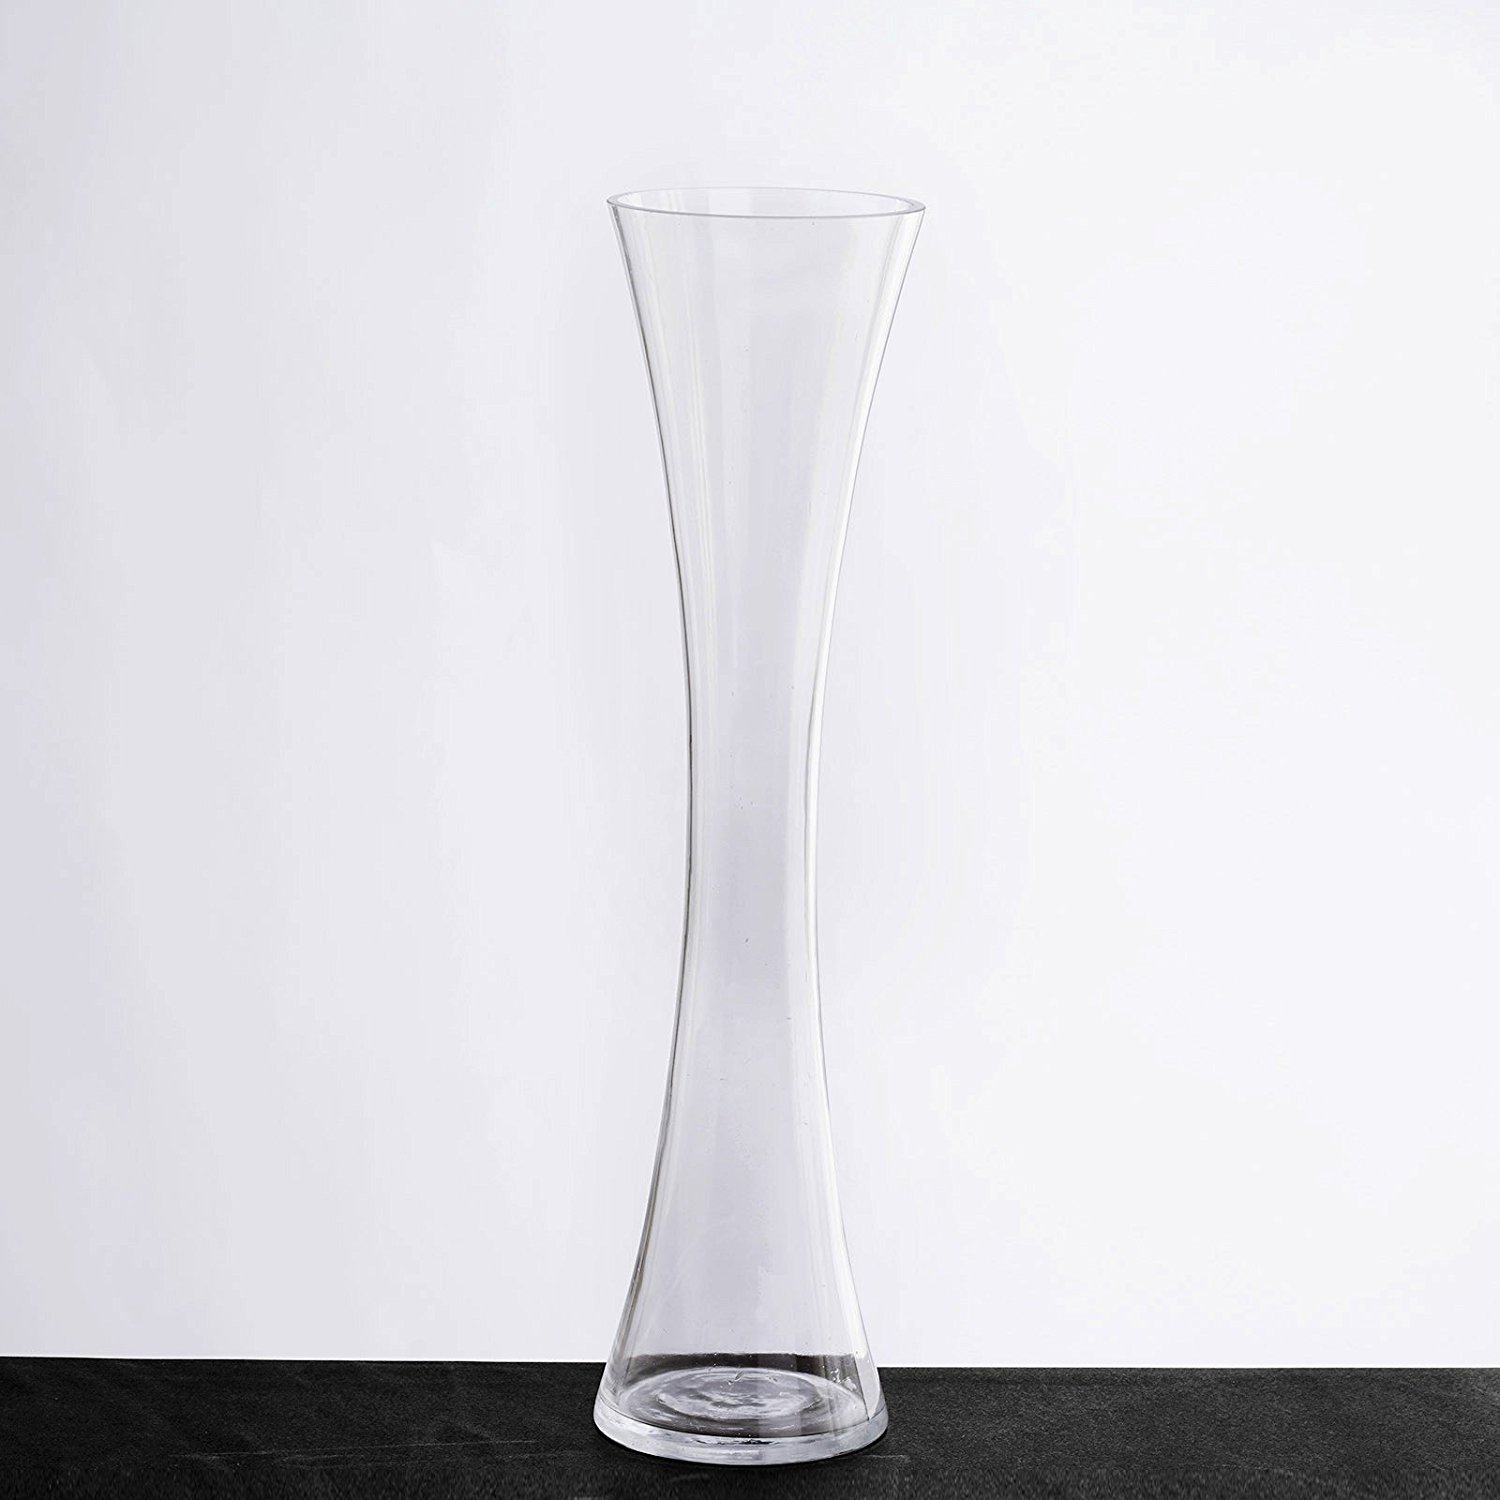 Cheap Tall Thin Glass Vases Find Tall Thin Glass Vases Deals On Line At Alibaba Com